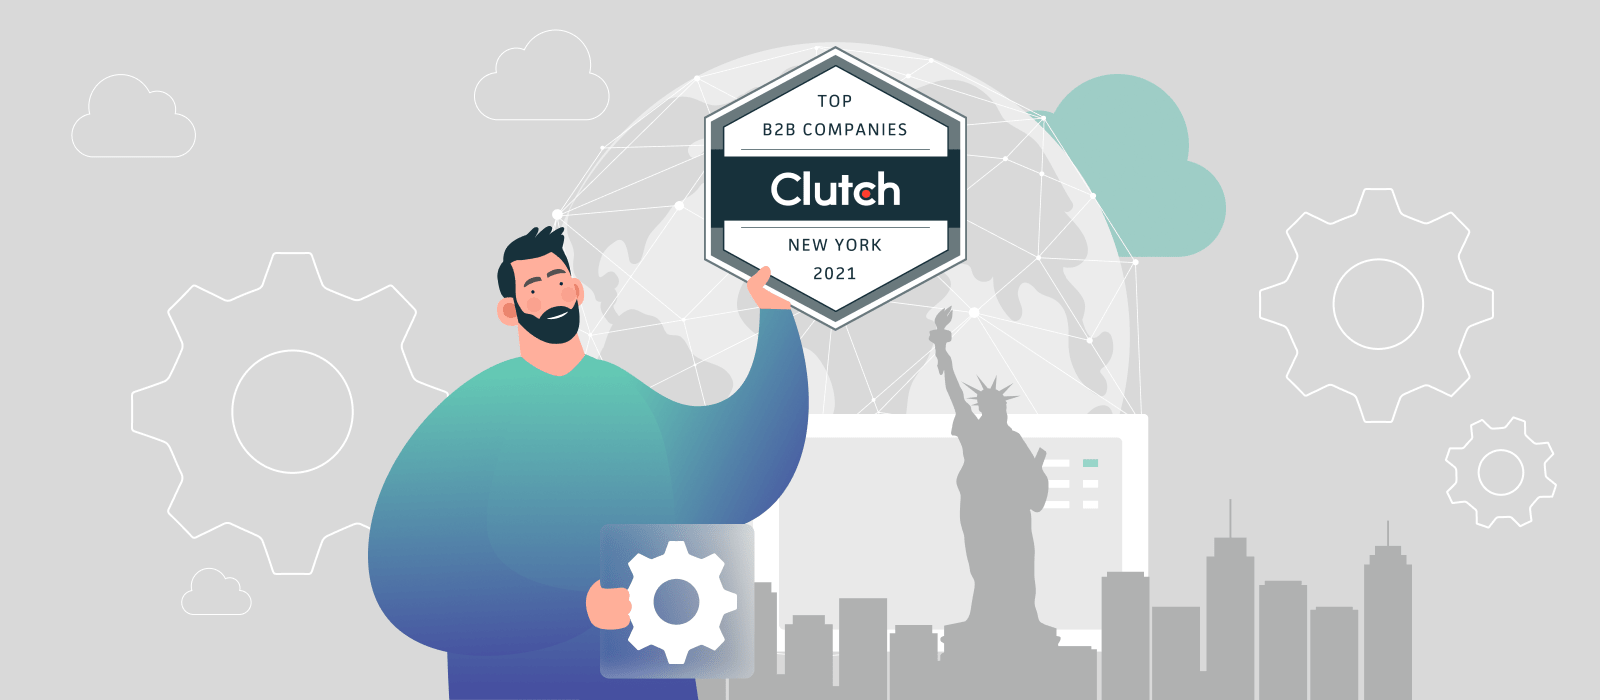 A person holding Clutch Top B2B Companies badge on New York background